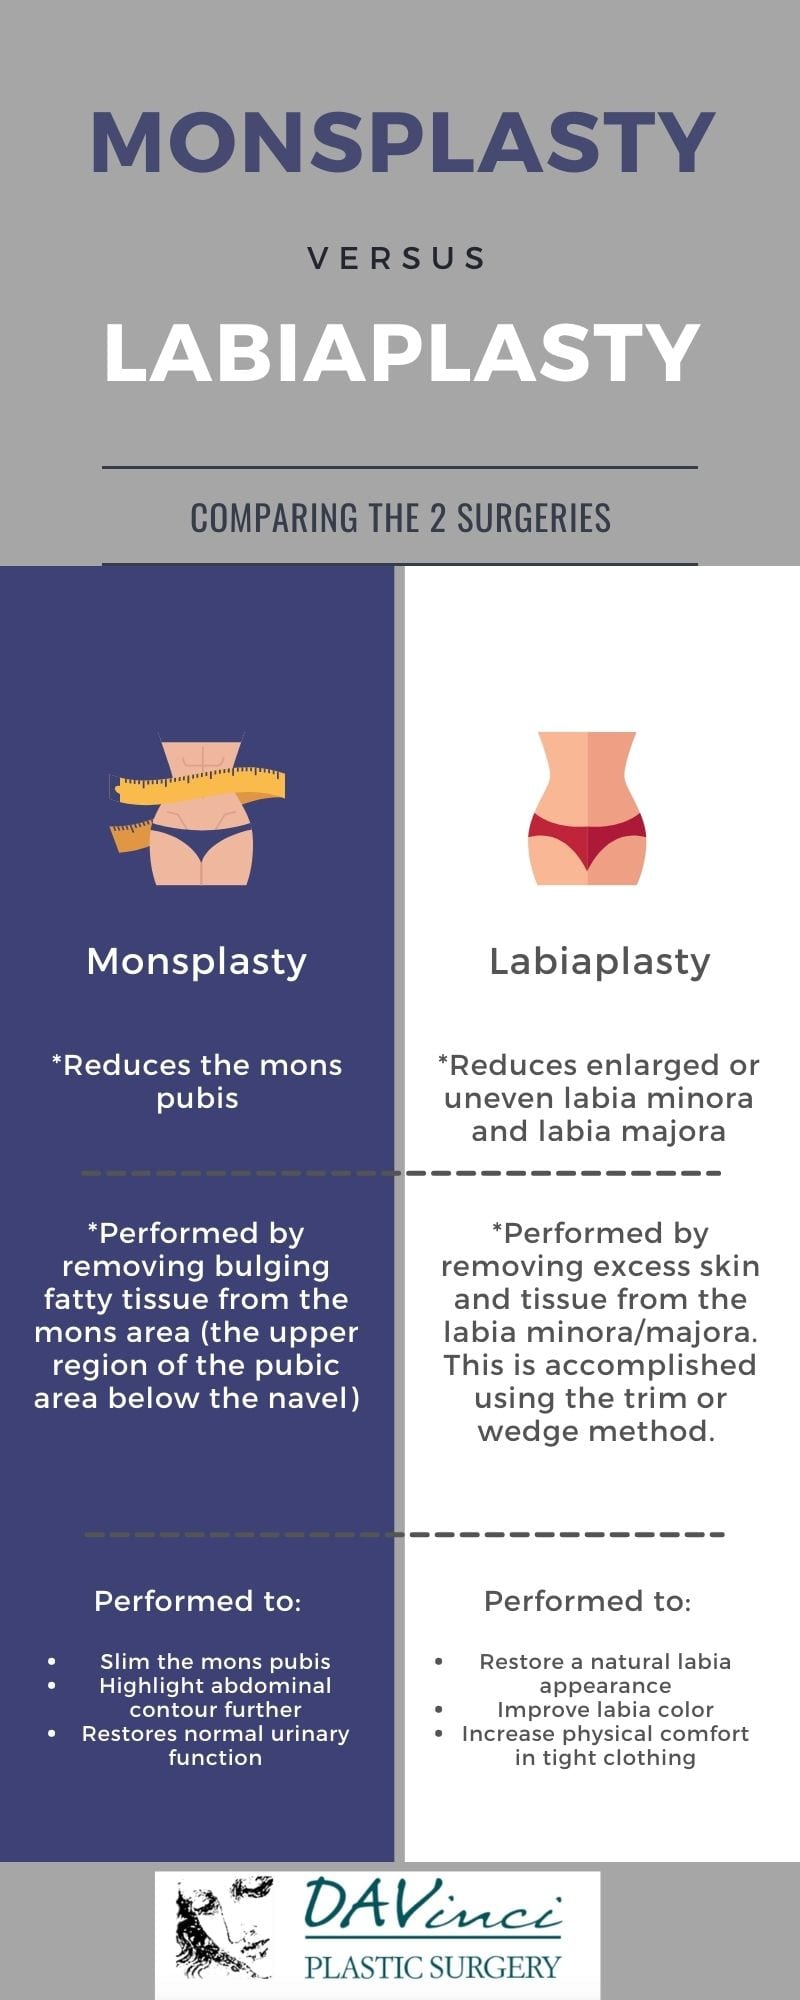 Infographic showing the differences between labiaplasty and monsplasty.